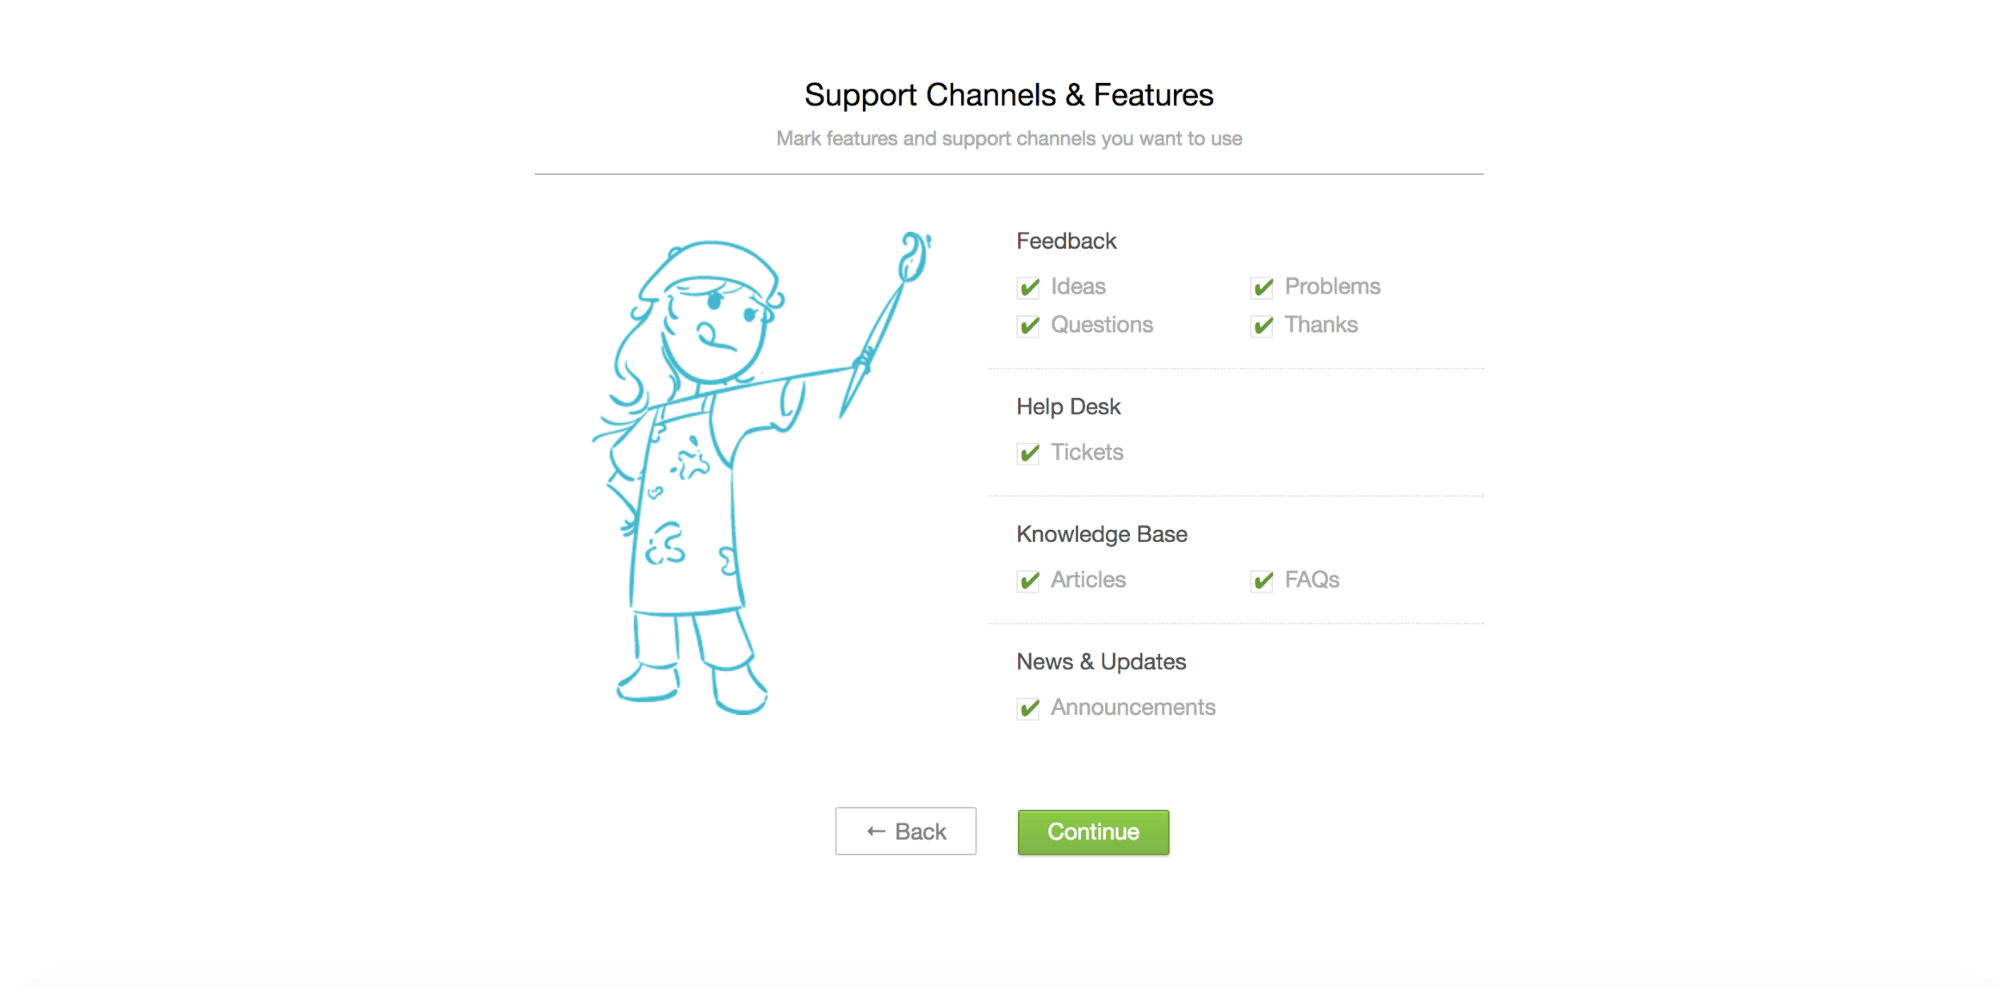 UseResponse support channel & features view